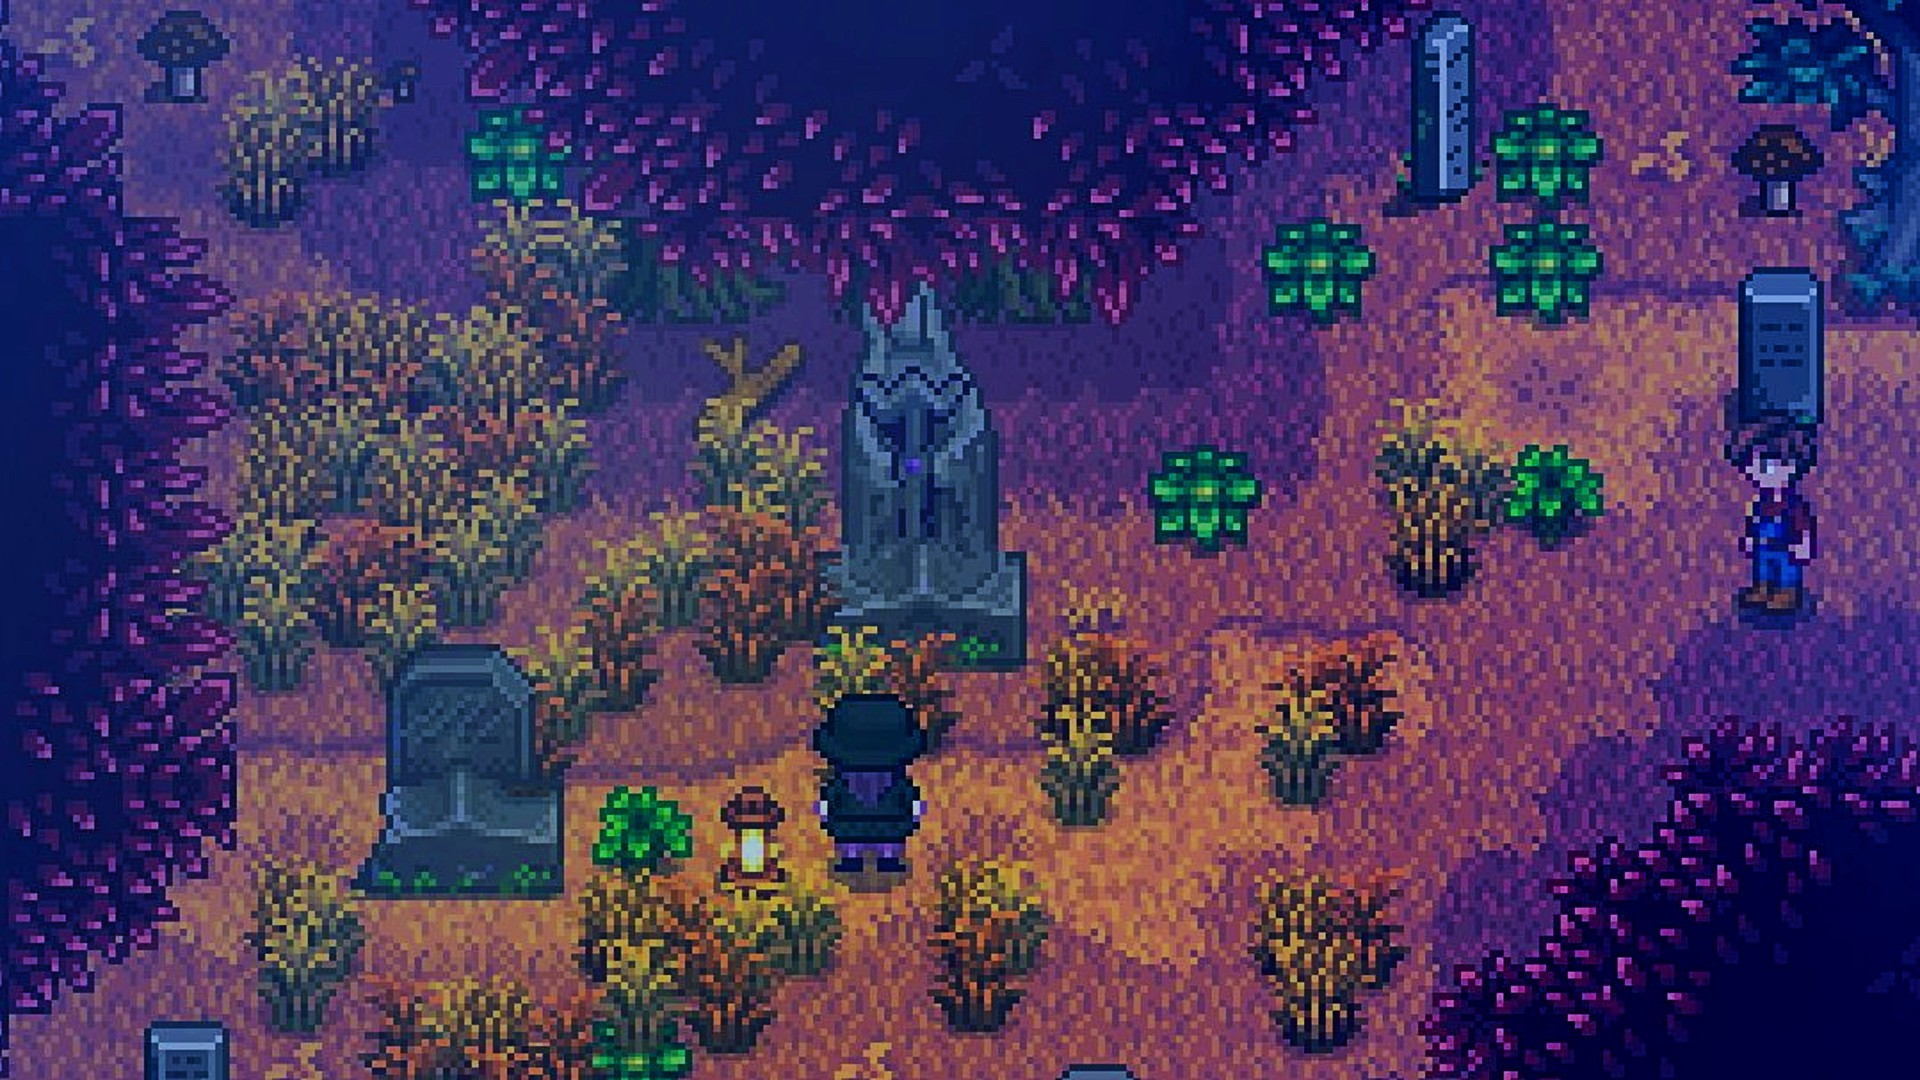 This Stardew Valley mod adds a missing persons mystery to solve